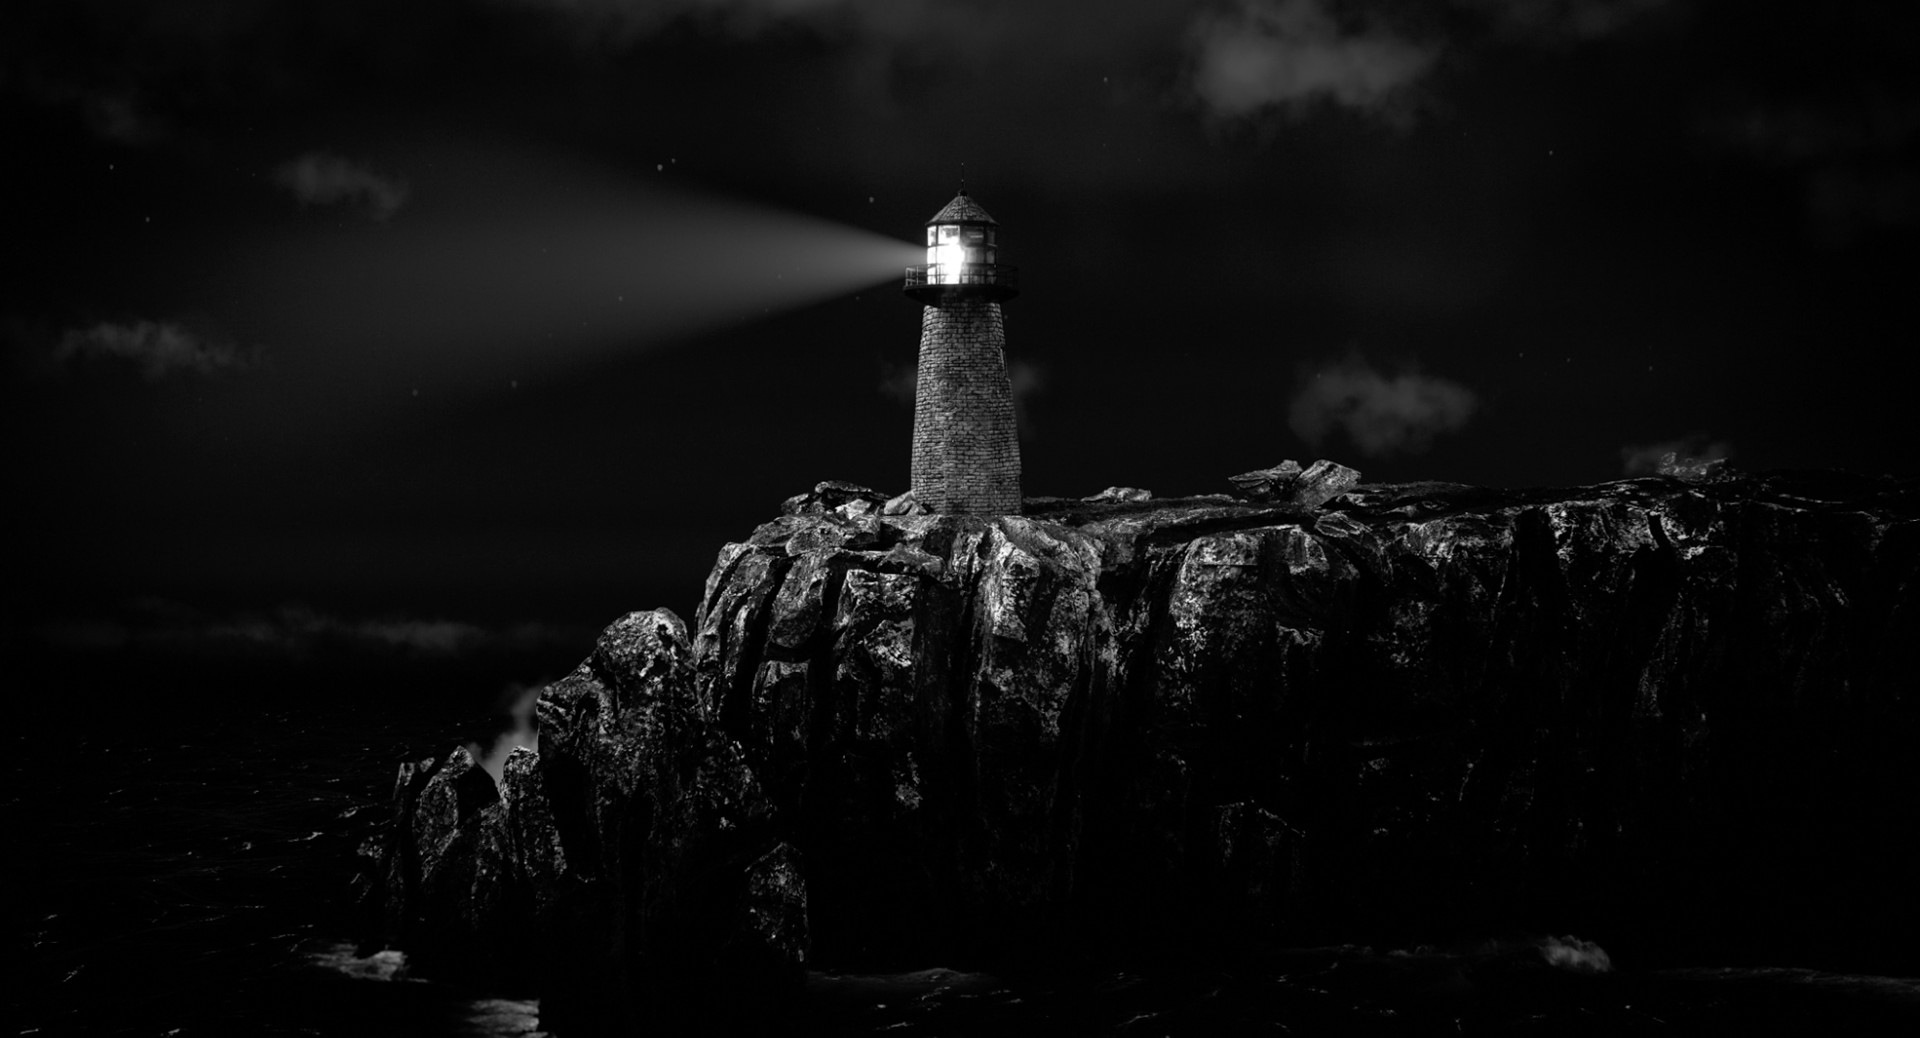 The light house photo